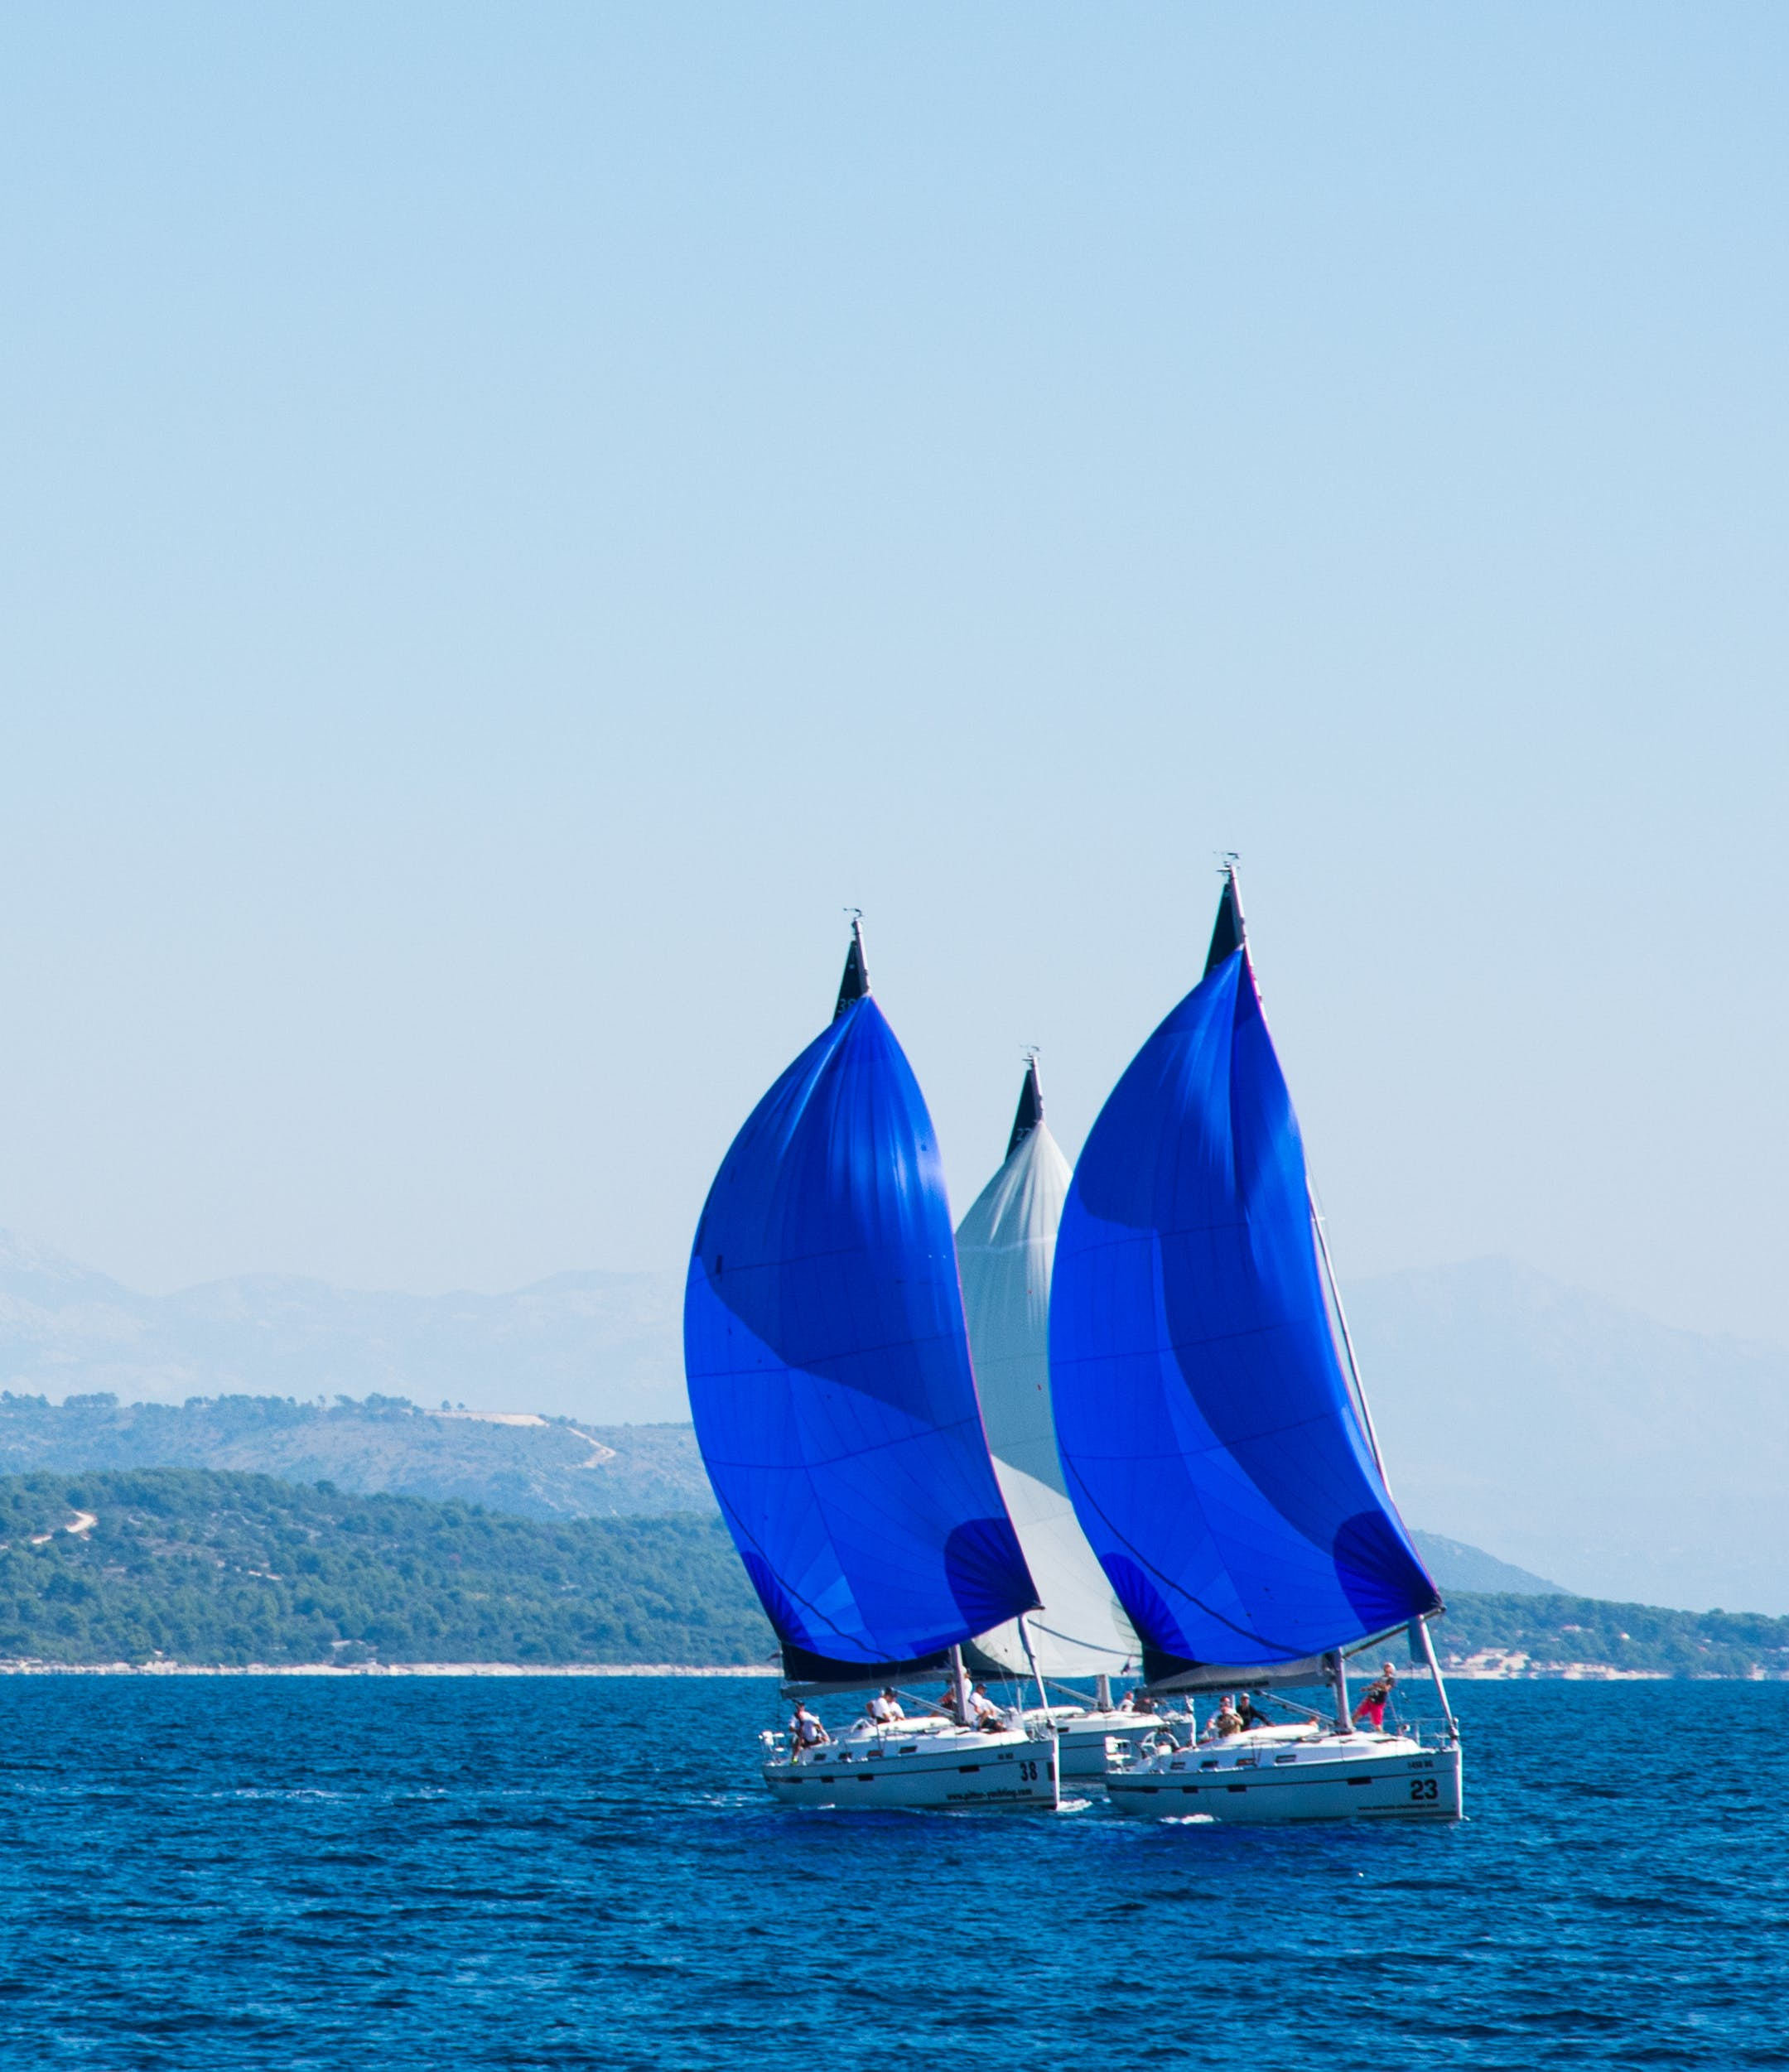 Free stock photo of sailing, sailing boats